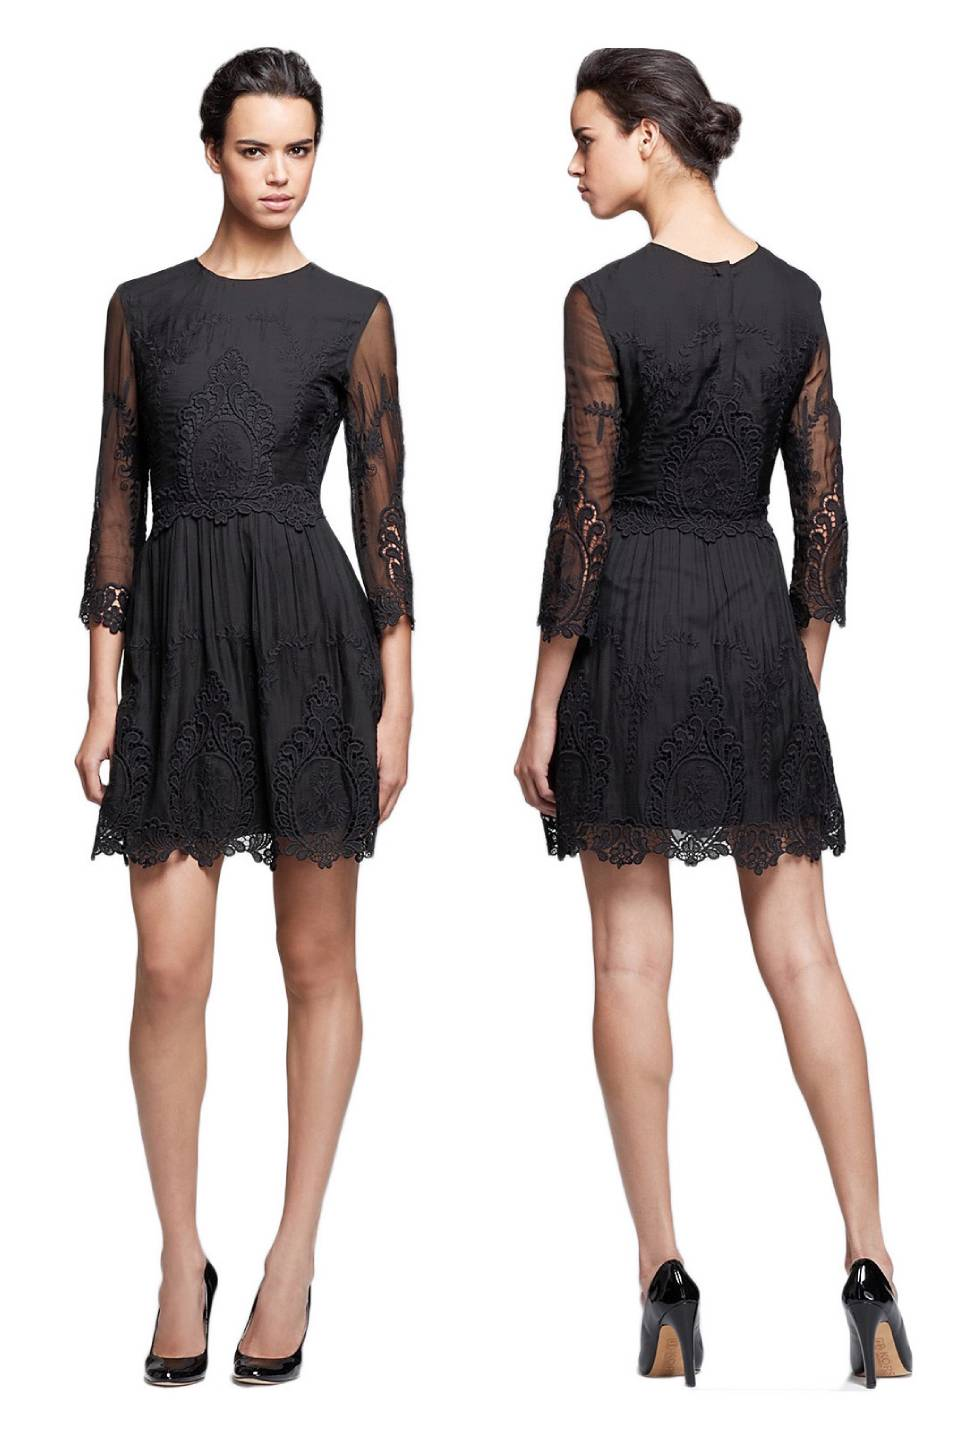 Nwt Dolce Vita Black Silk Lace Embroidered Valentina Dress L Sold Out Ebay